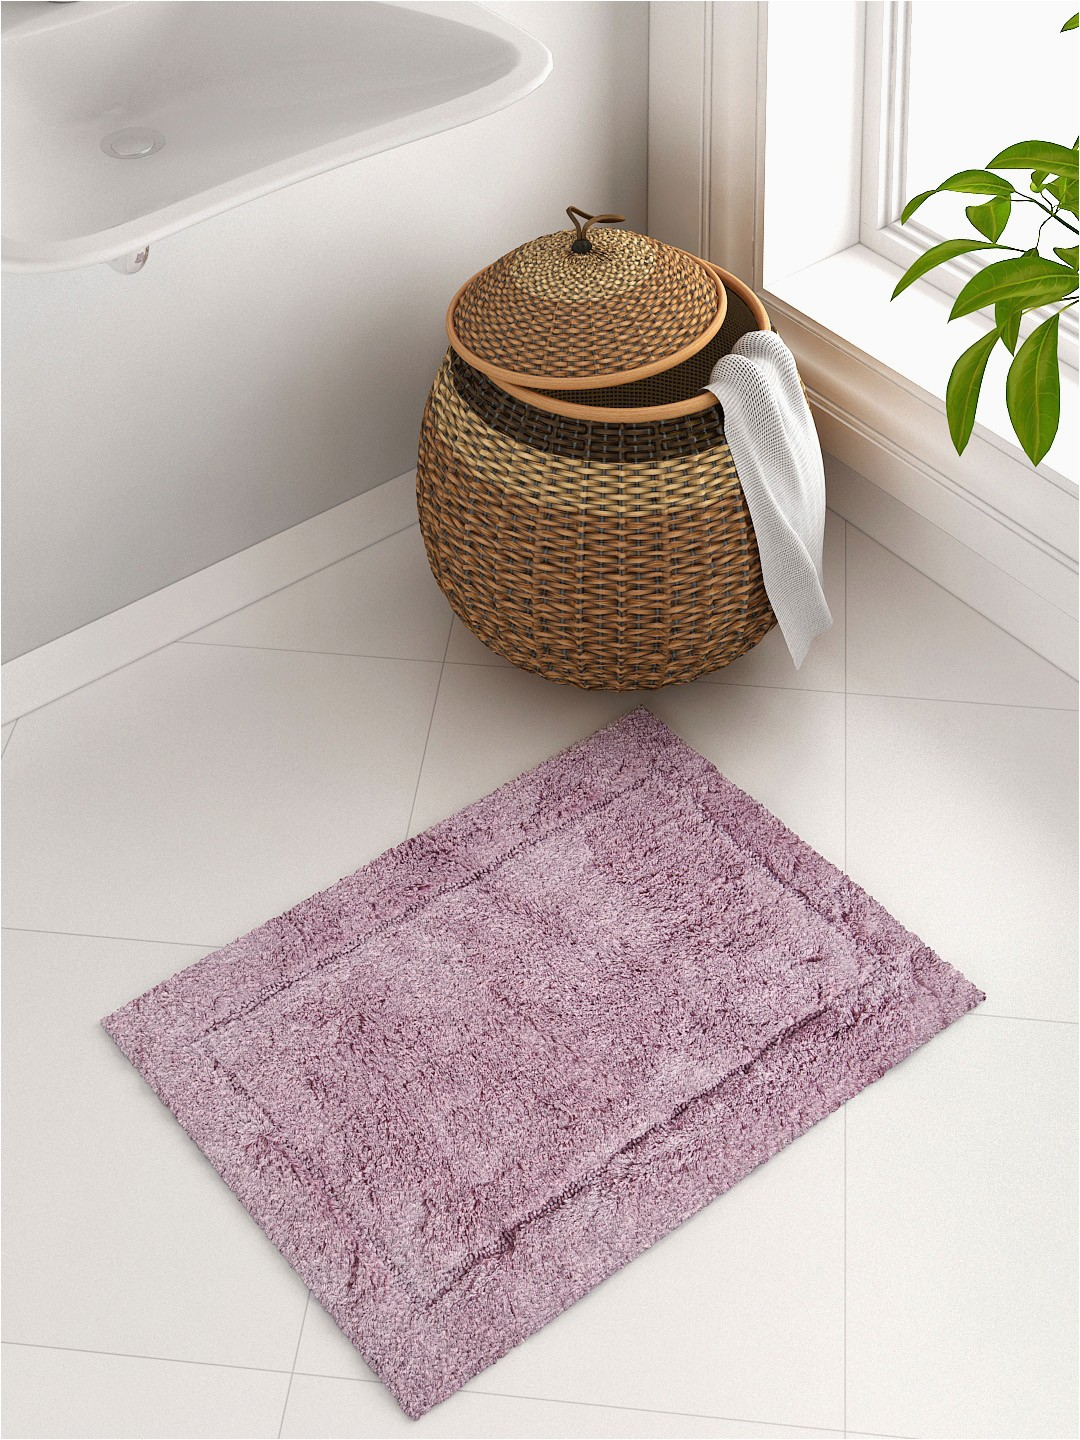 Mauve Bathroom Rug Sets Spaces Mauve Rectangular Hygro Cotton Bath Rug